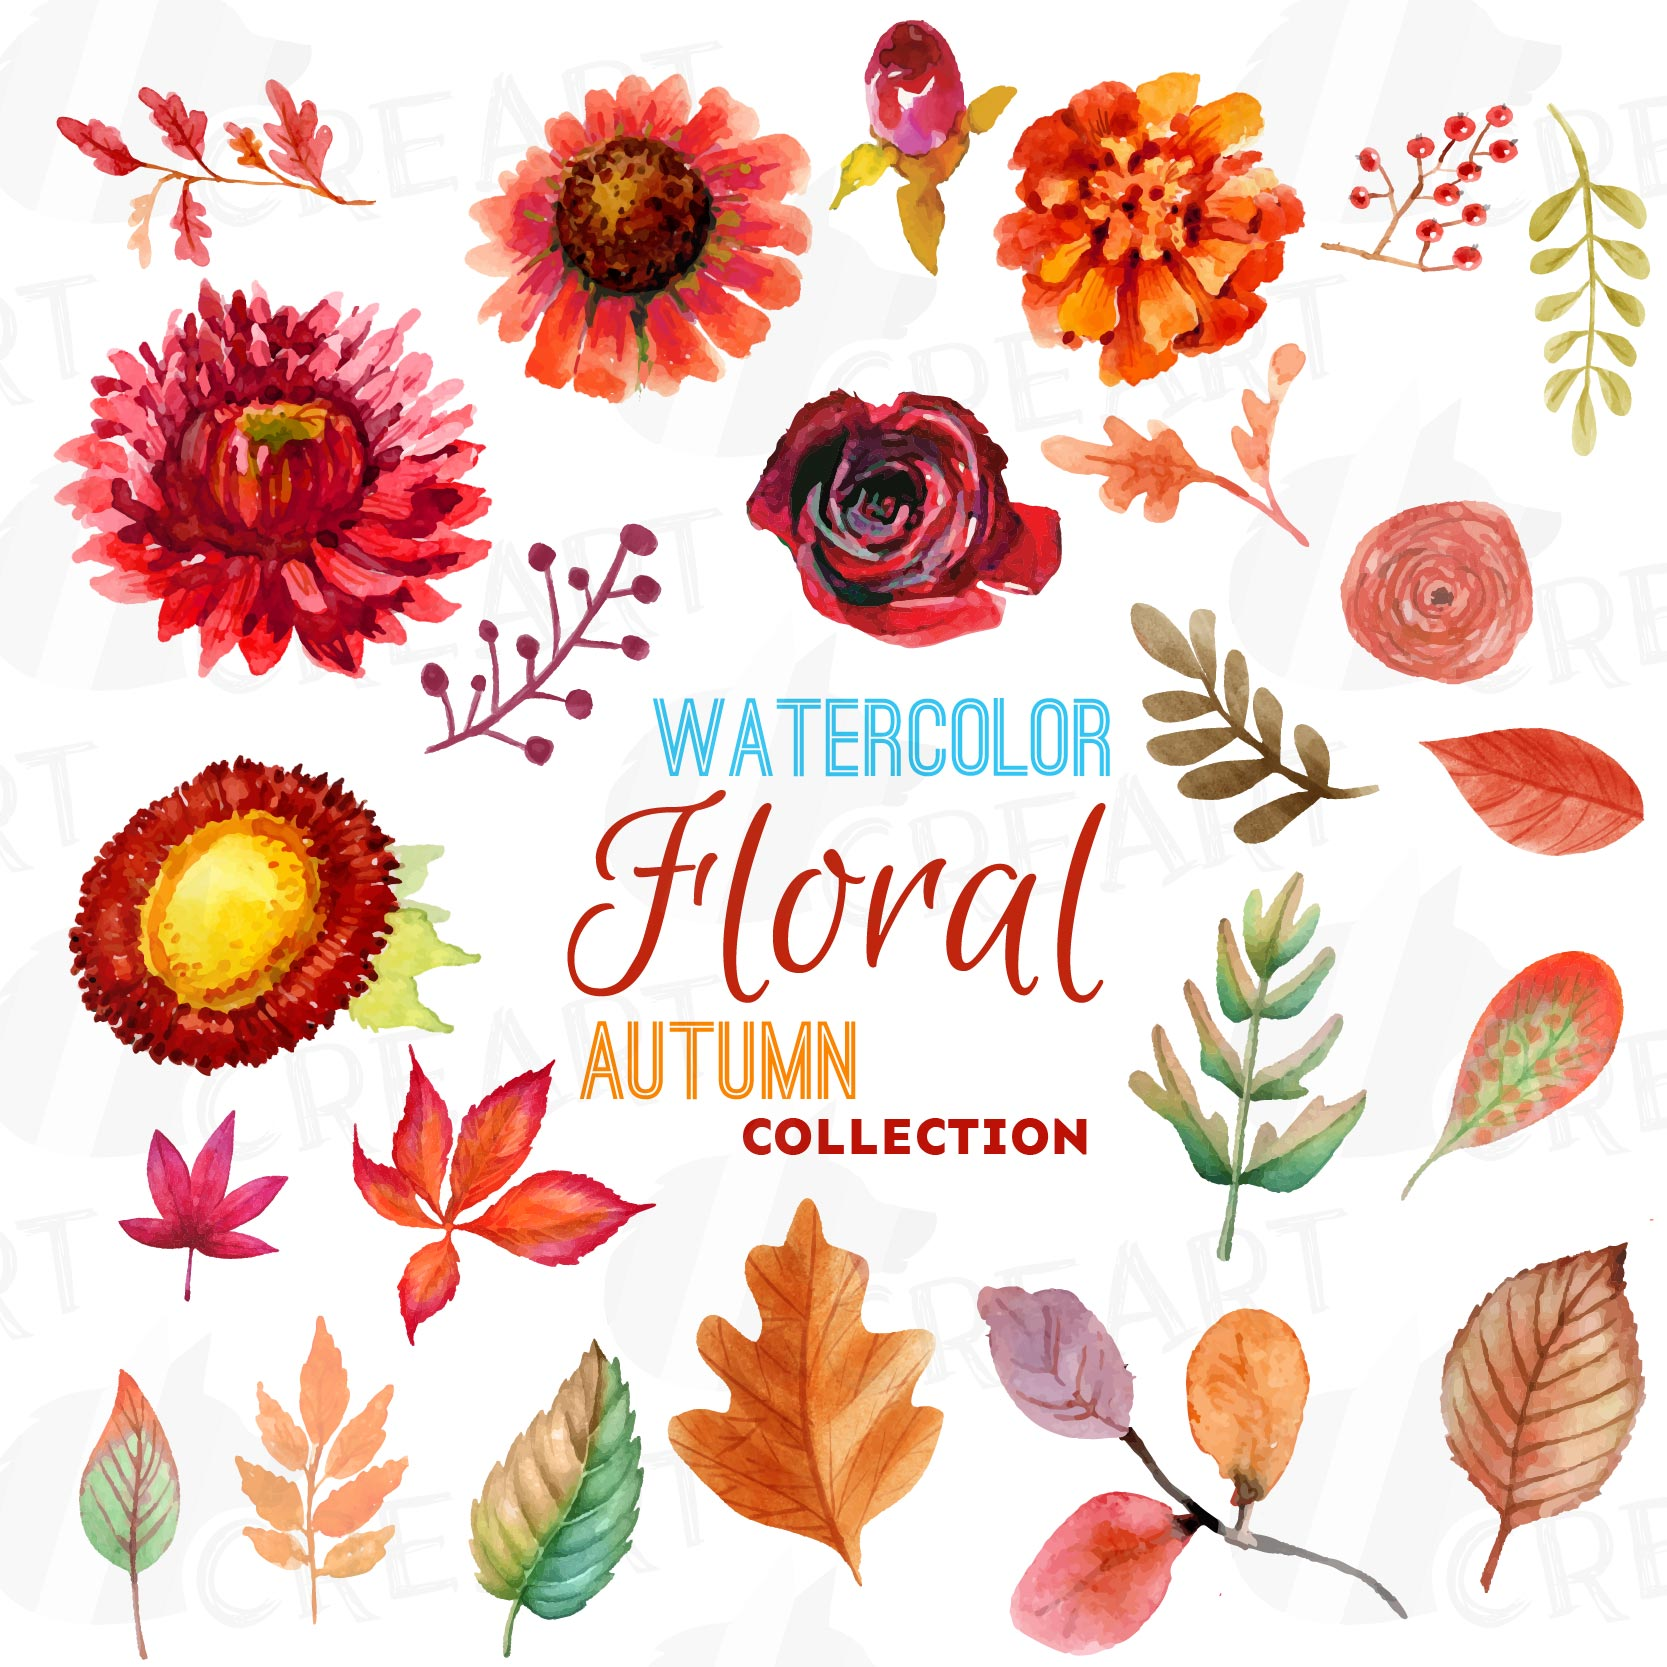 Autumn Fowers And Leafs Clip Art Pack Watercolor Floral Clipart